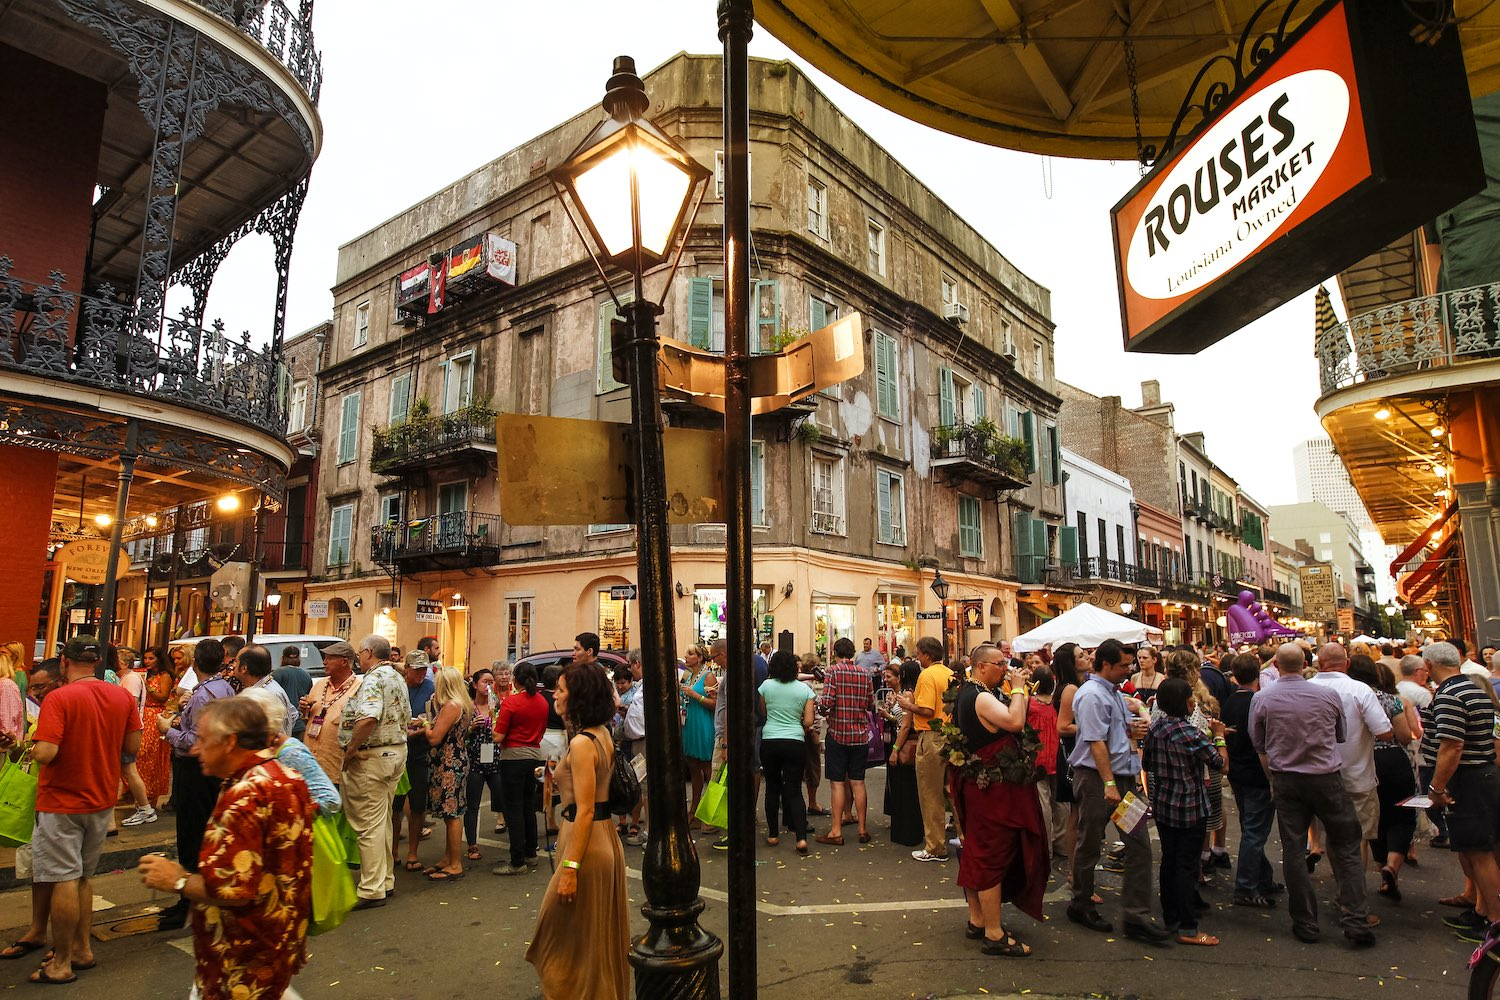 New Orleans Food & Wine Festival 2020.